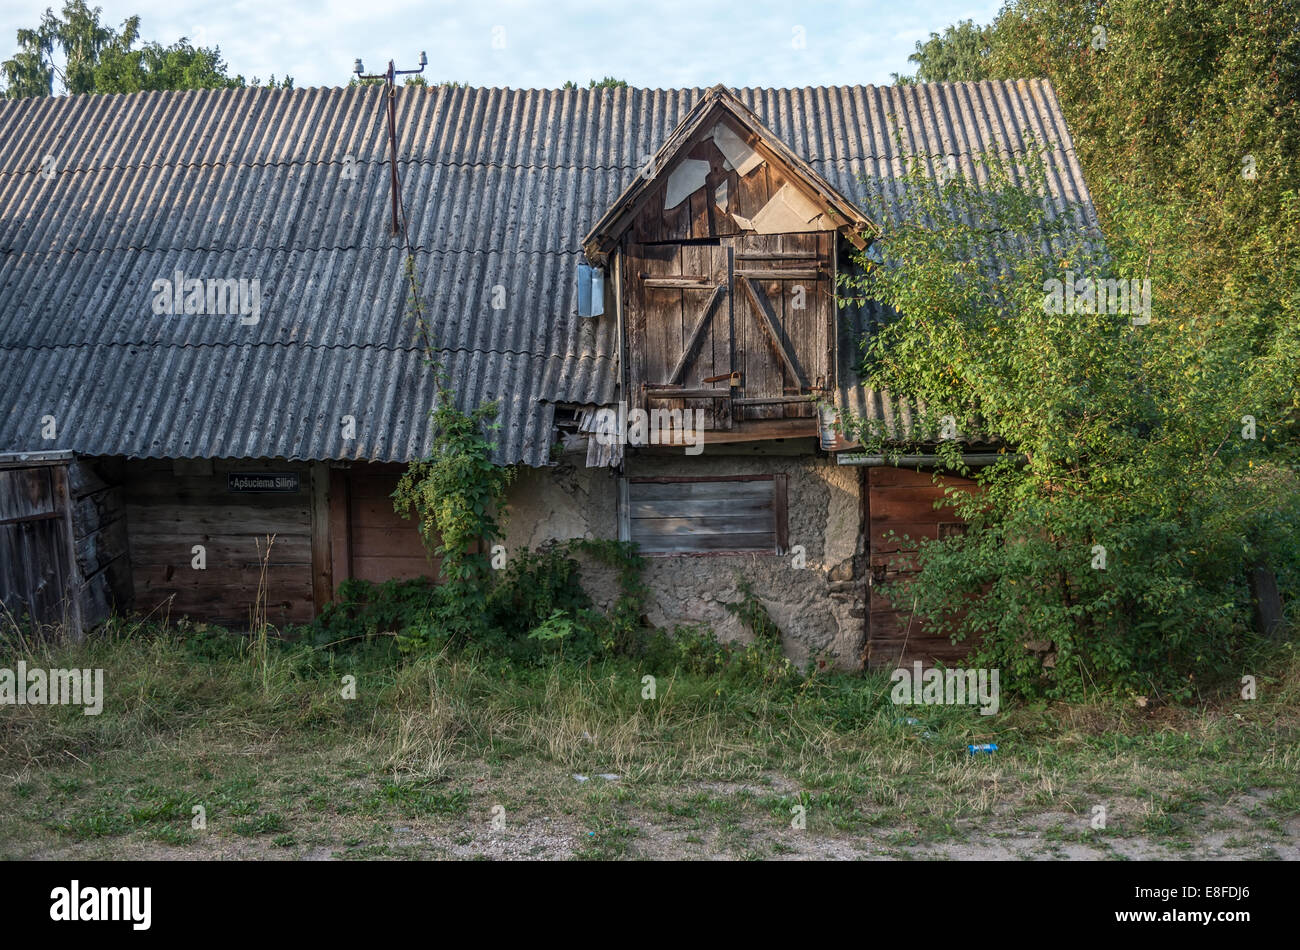 Latvian deserted house - Stock Image